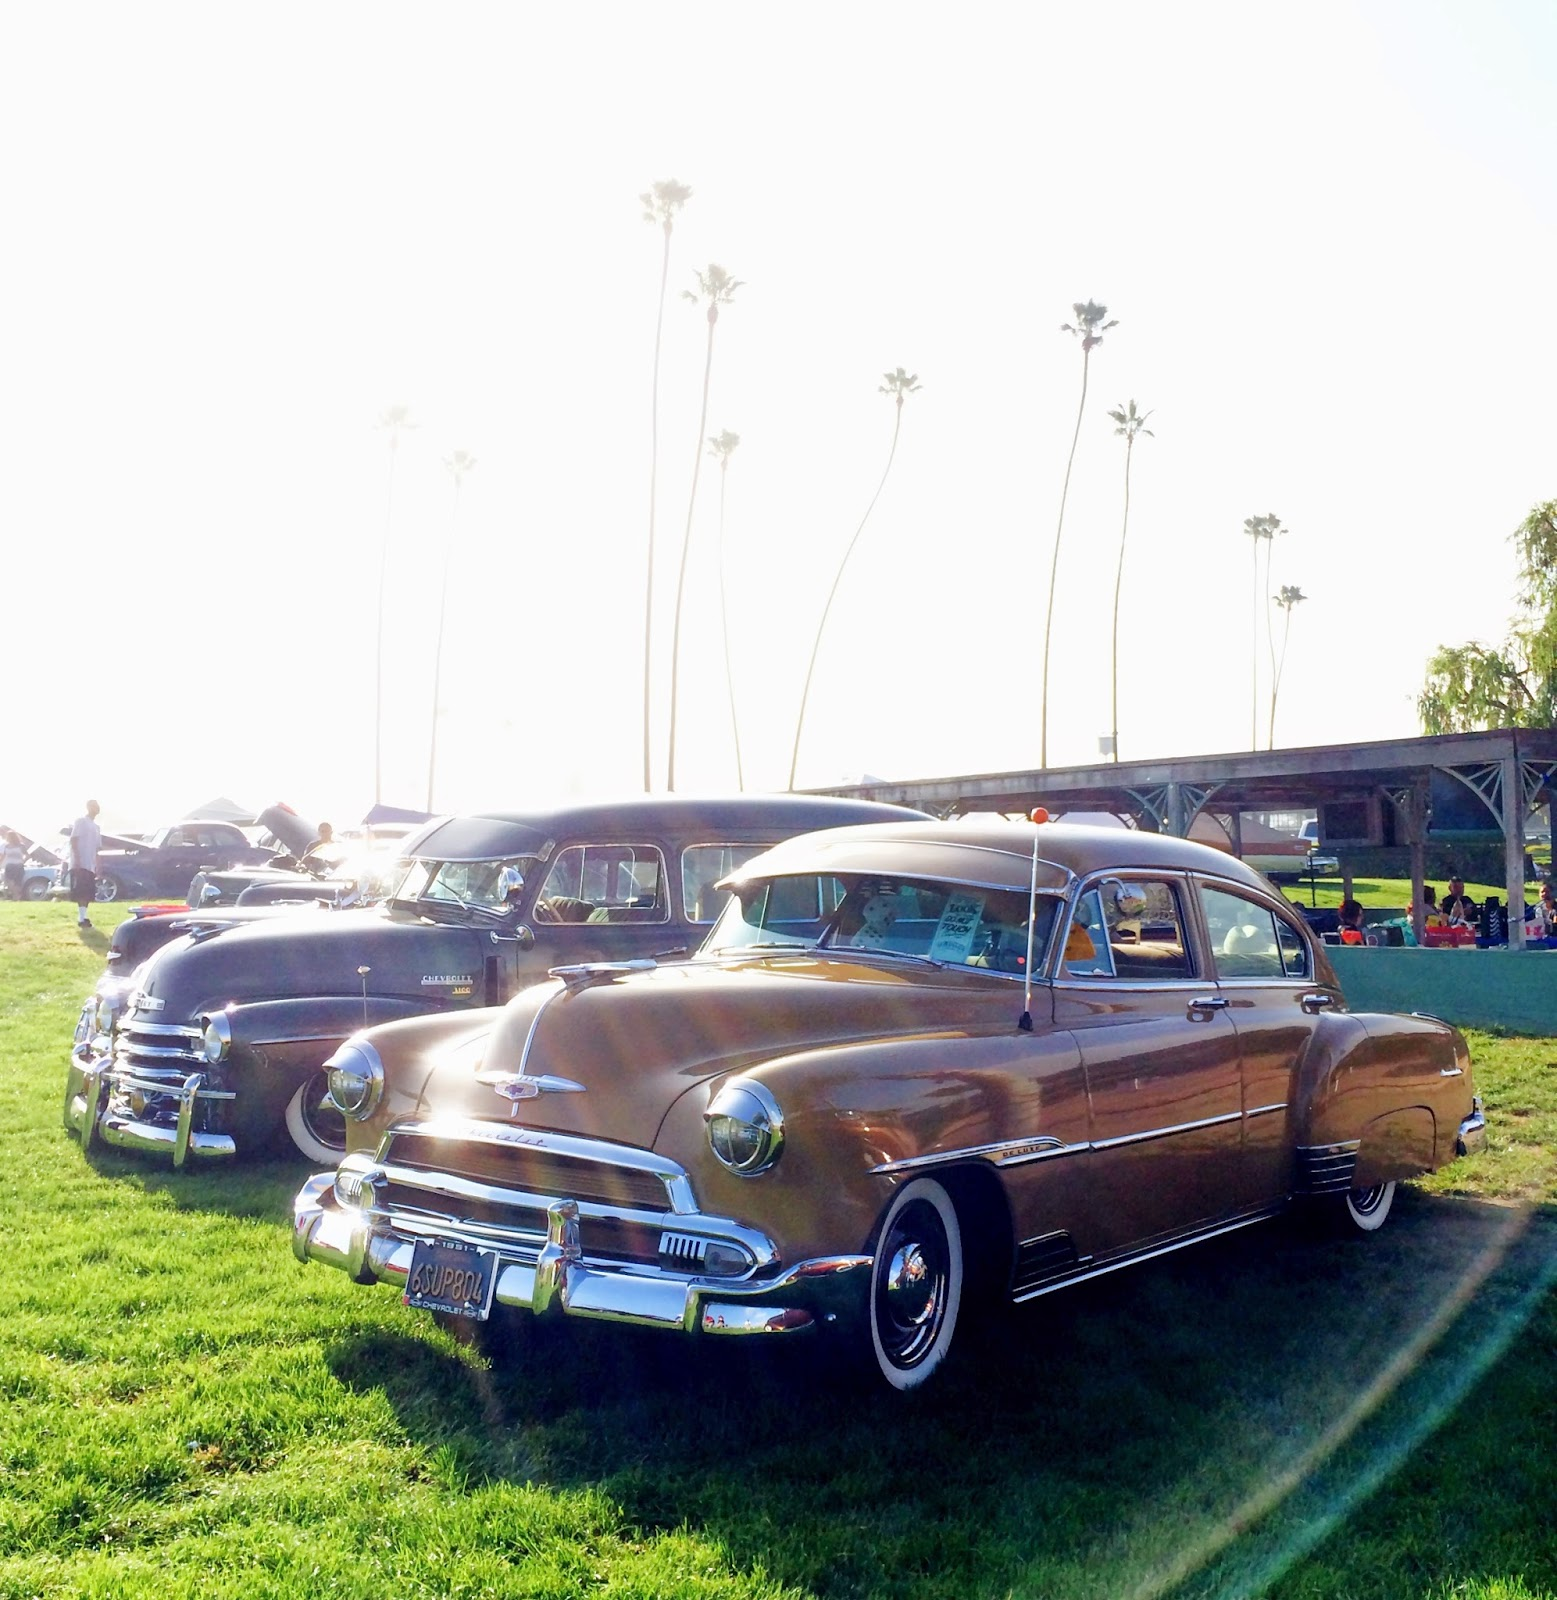 Covering Classic Cars : Hot Rods & Thoroughbreds at the Road Kings ...